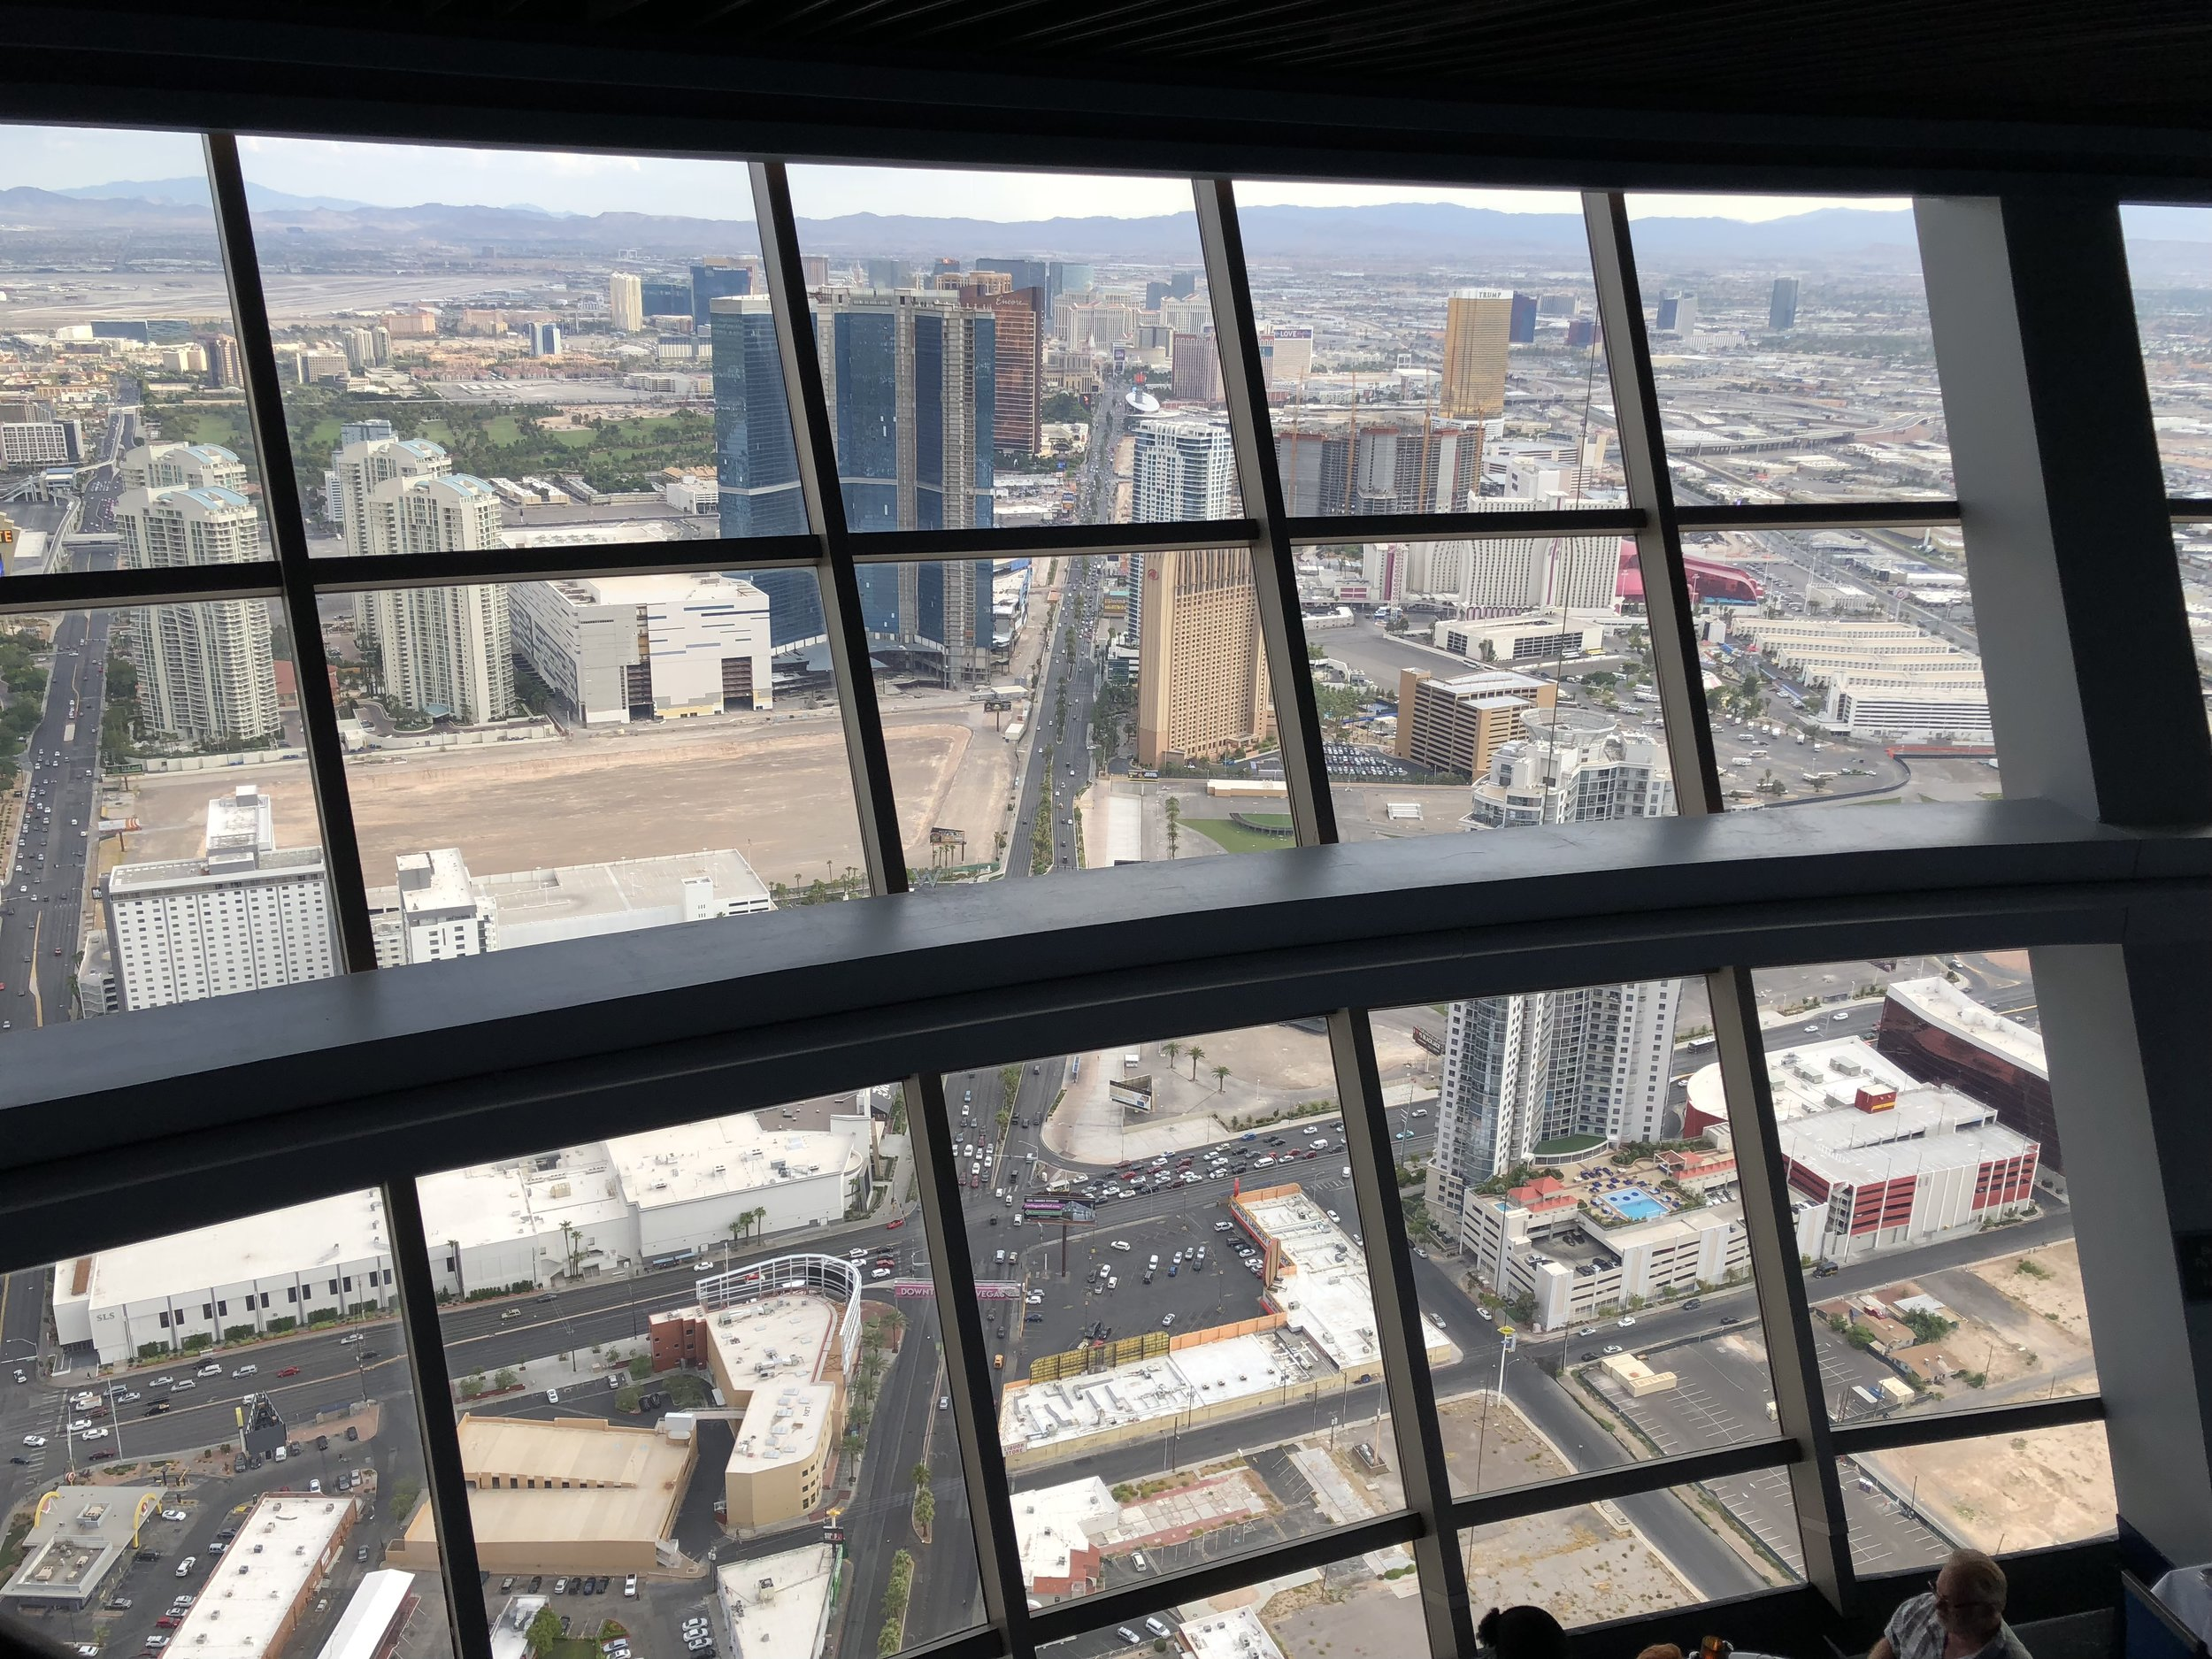 The view of the Strip from 107 SkyLounge at the Stratosphere